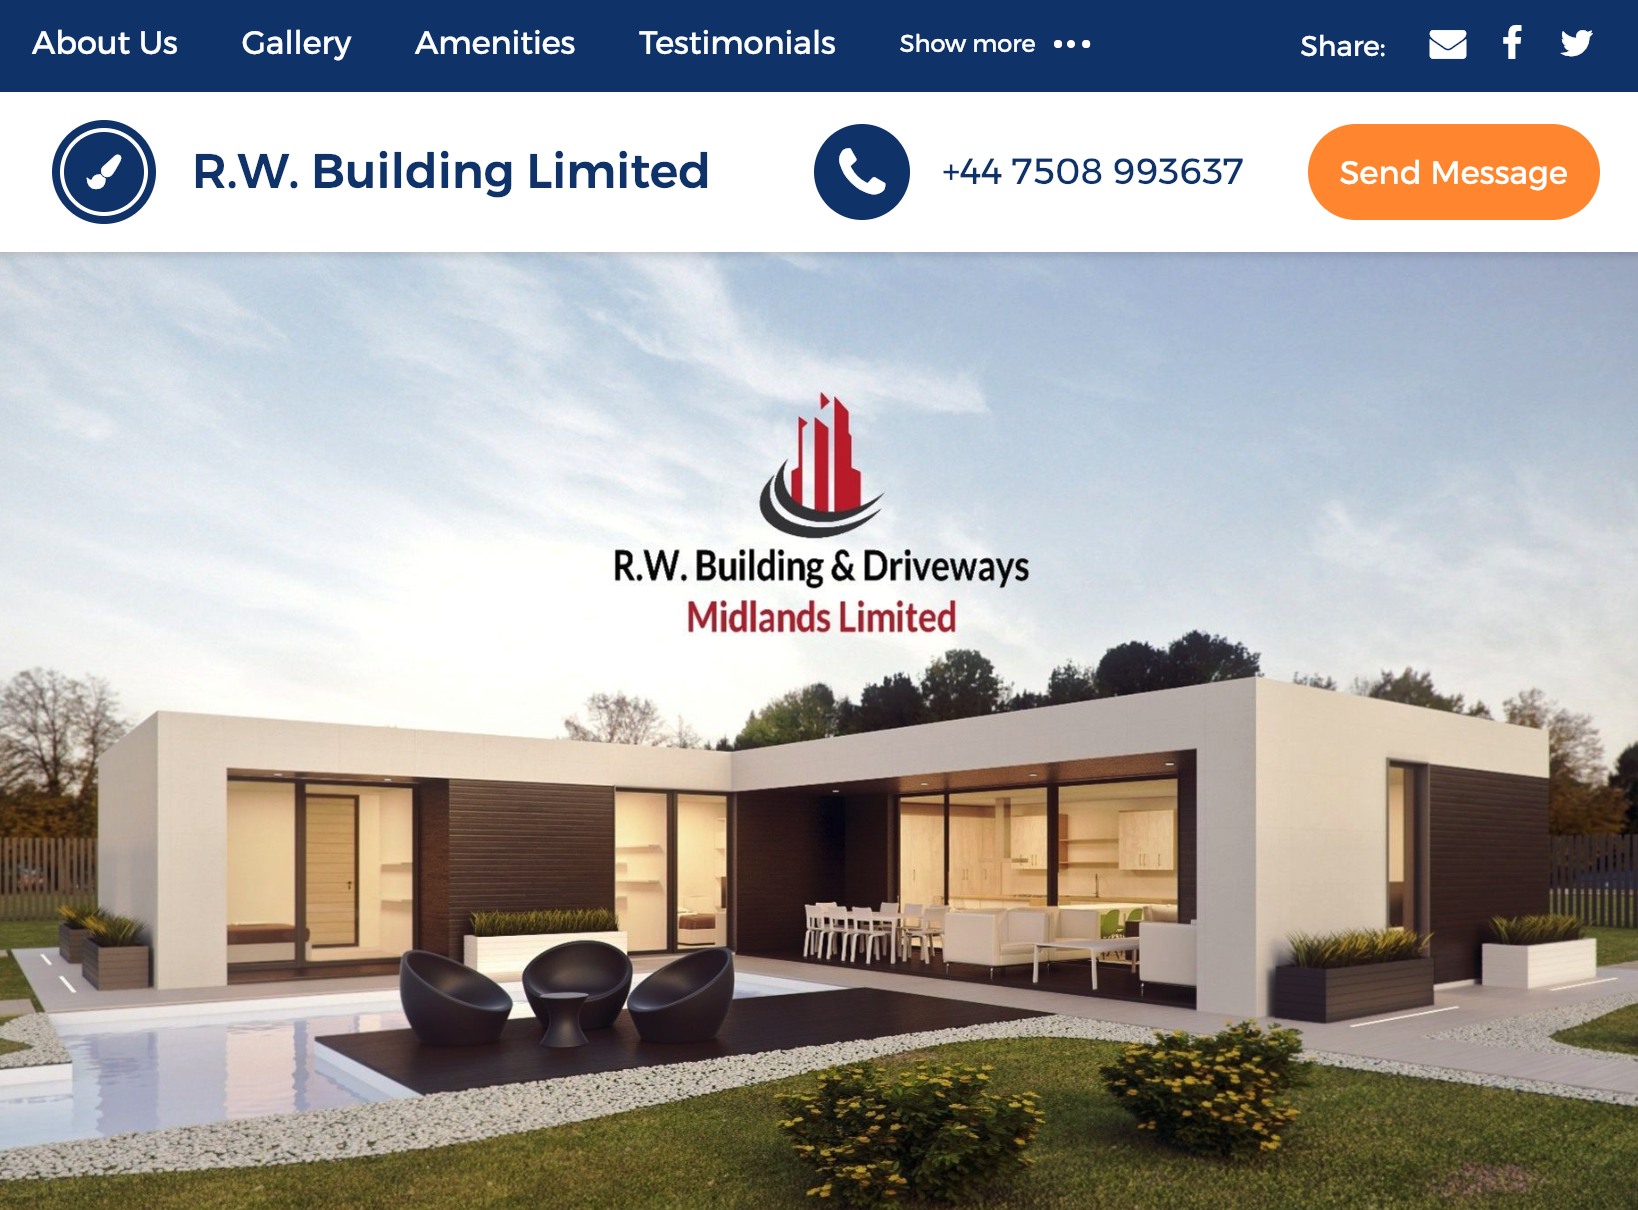 R.W. Building Limited